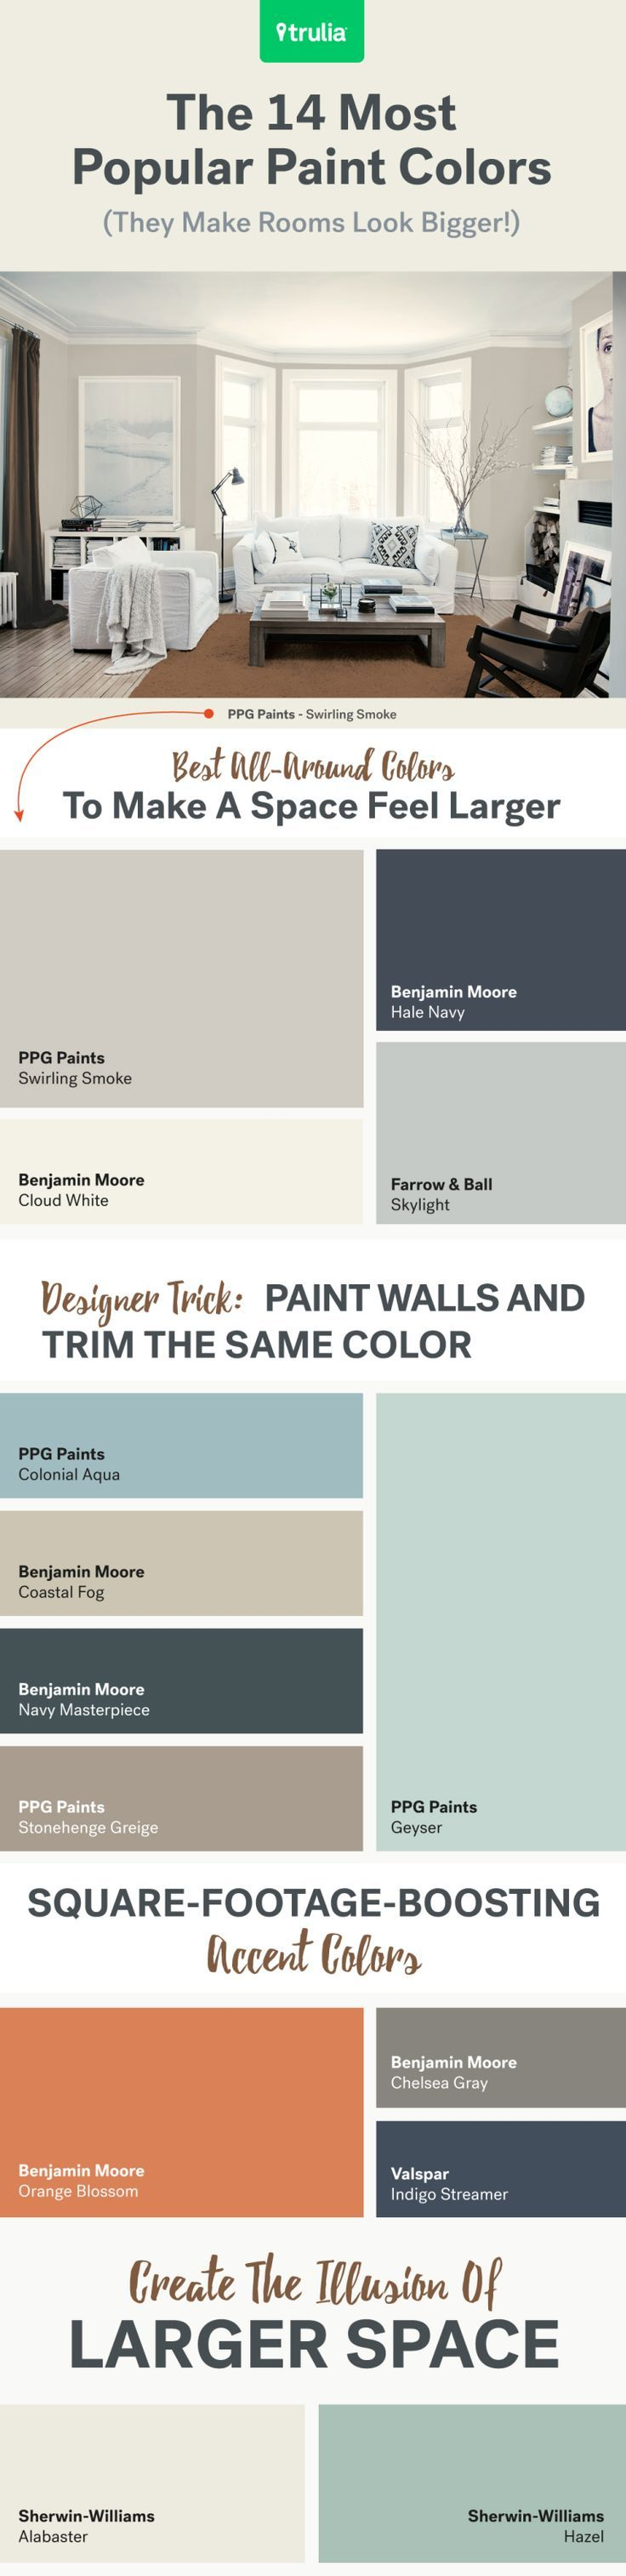 The 14 Most Popular Paint Colors (They Make A Room Look